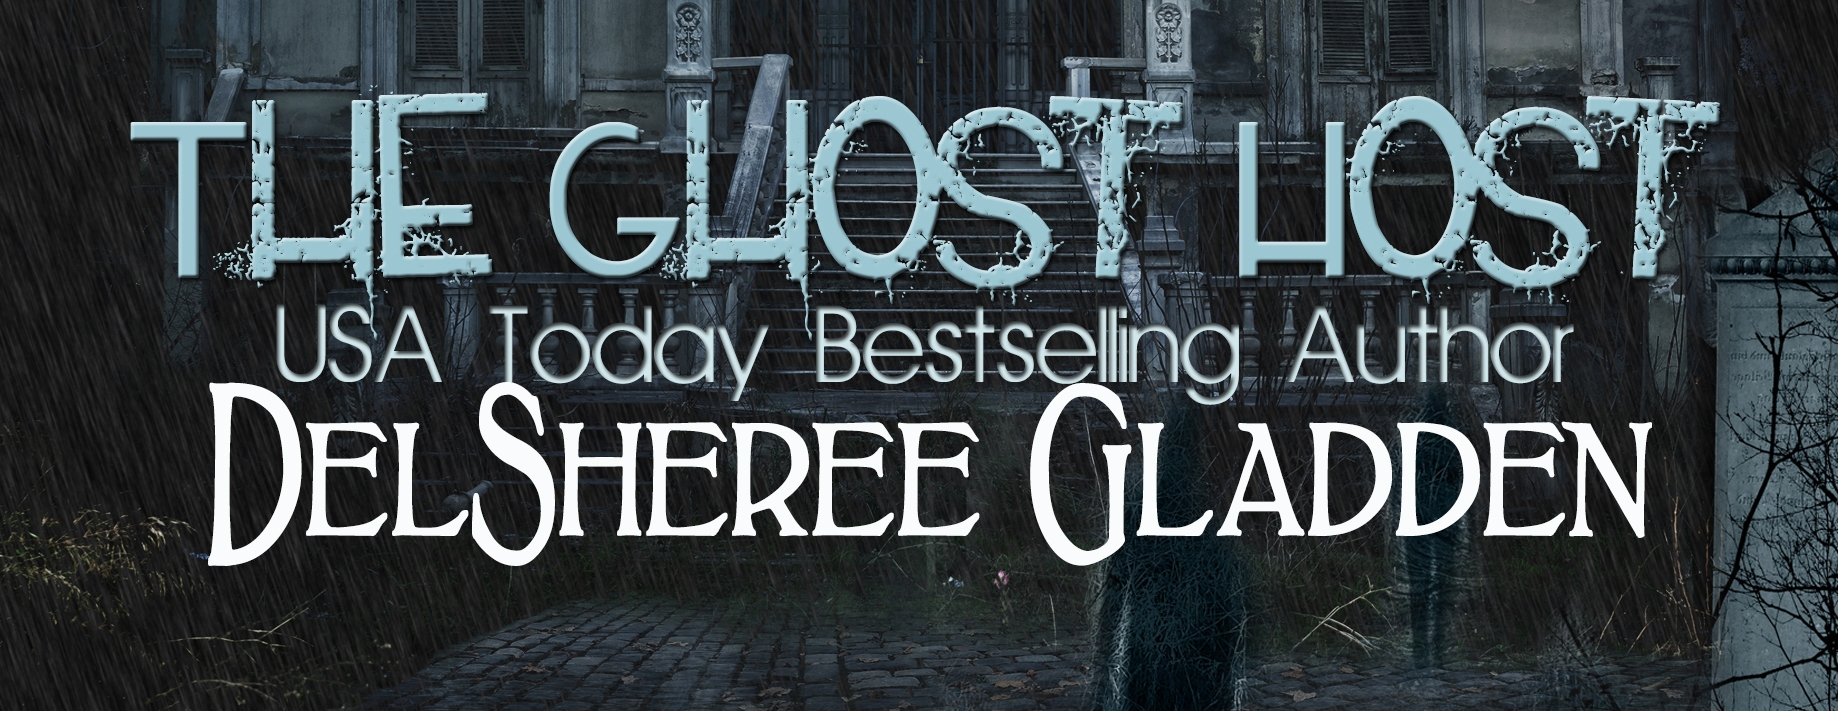 ghost host – Author DelSheree Gladden